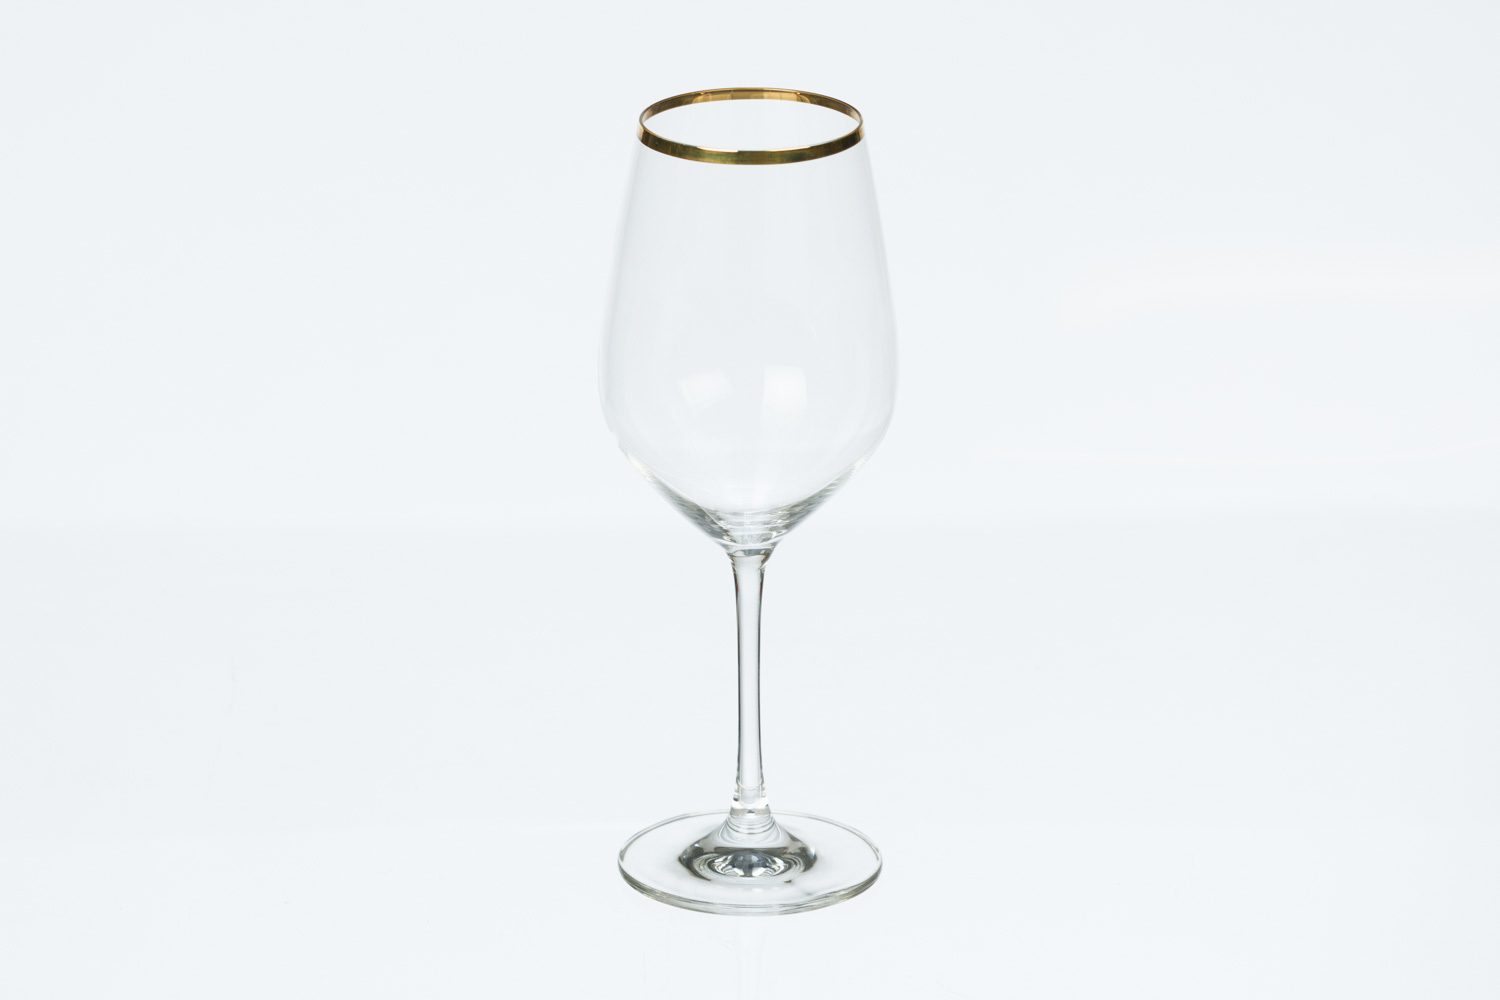 Gold Rim White Wine